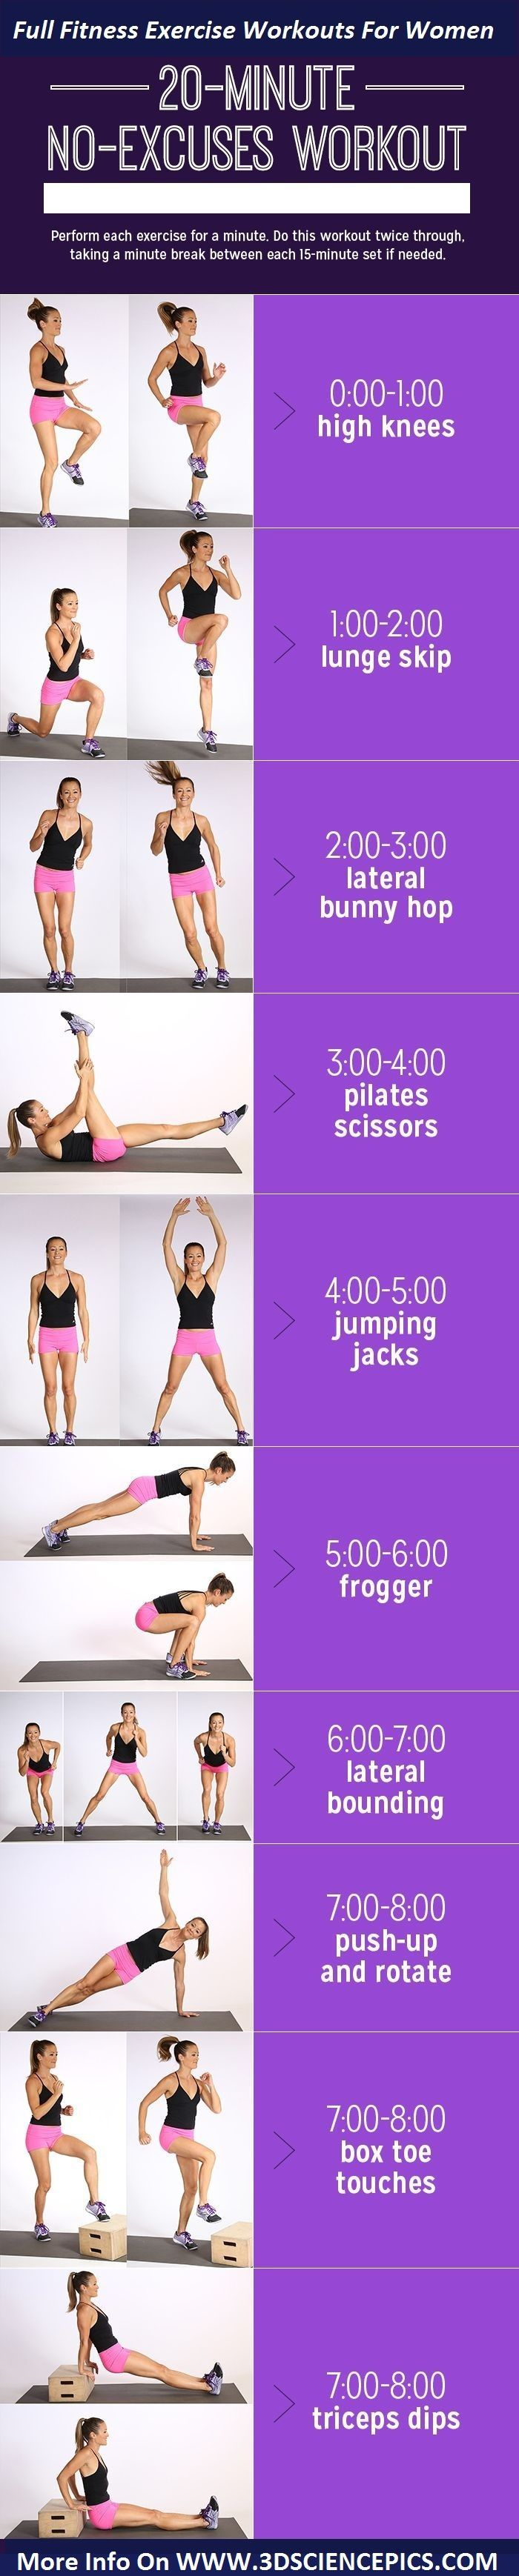 www.littlevendorathletics.com Fitness Workouts For Women Everyday Exercises